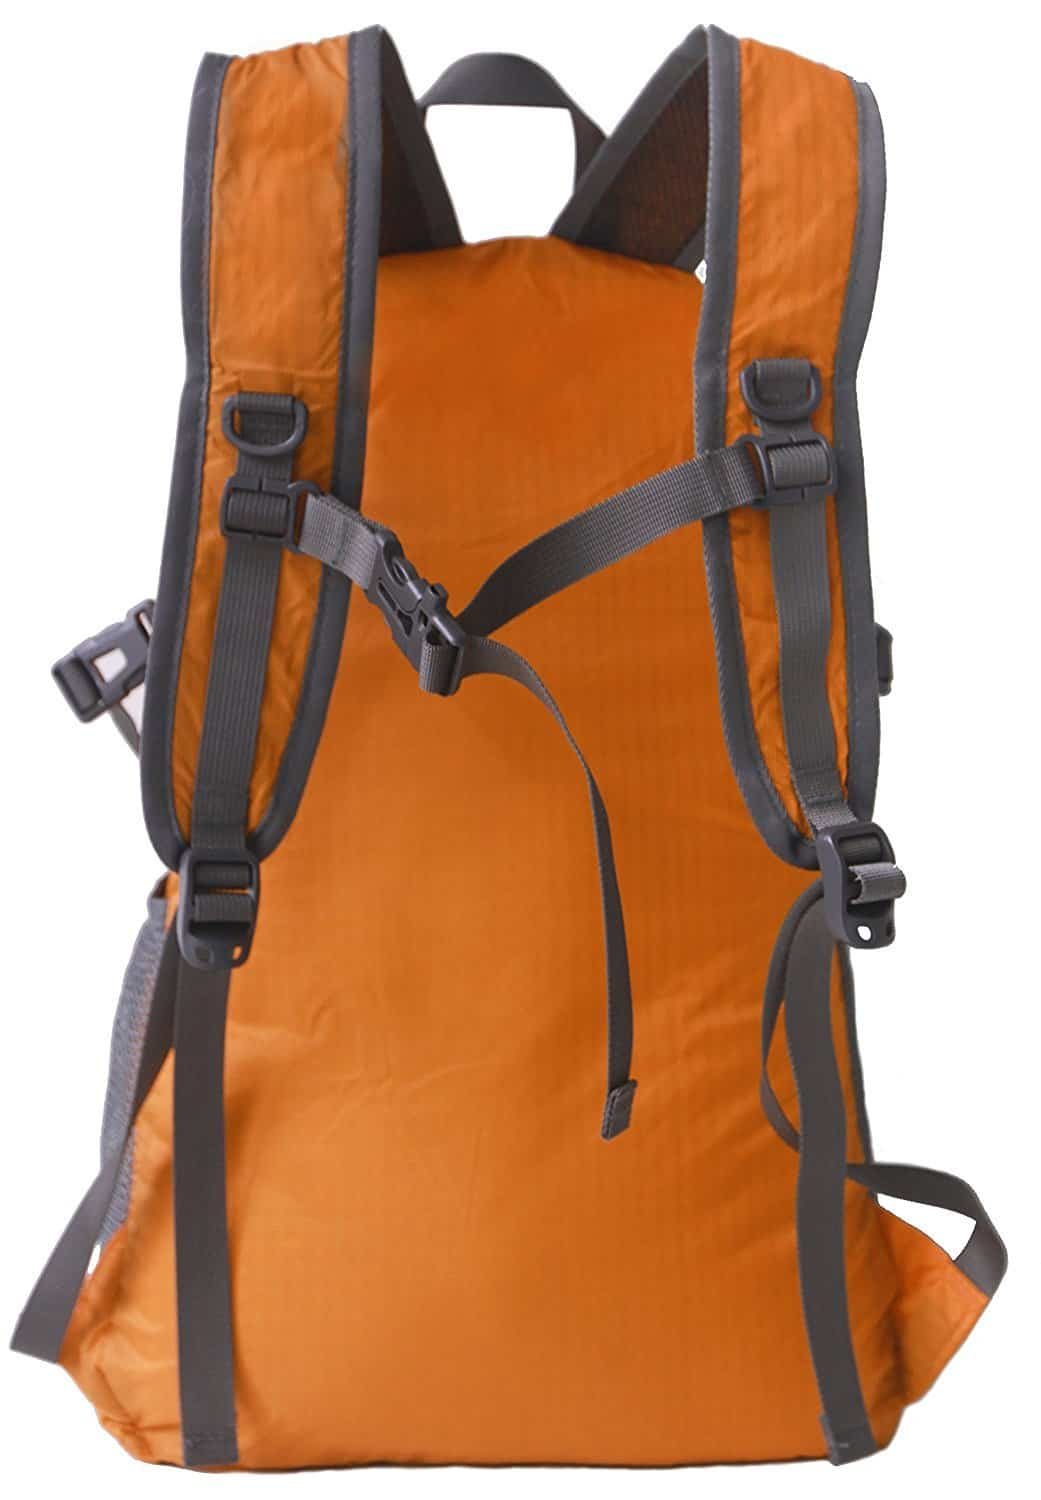 Outlander Packable LIghtweight Travel Hiking Backpack Daypack Orange